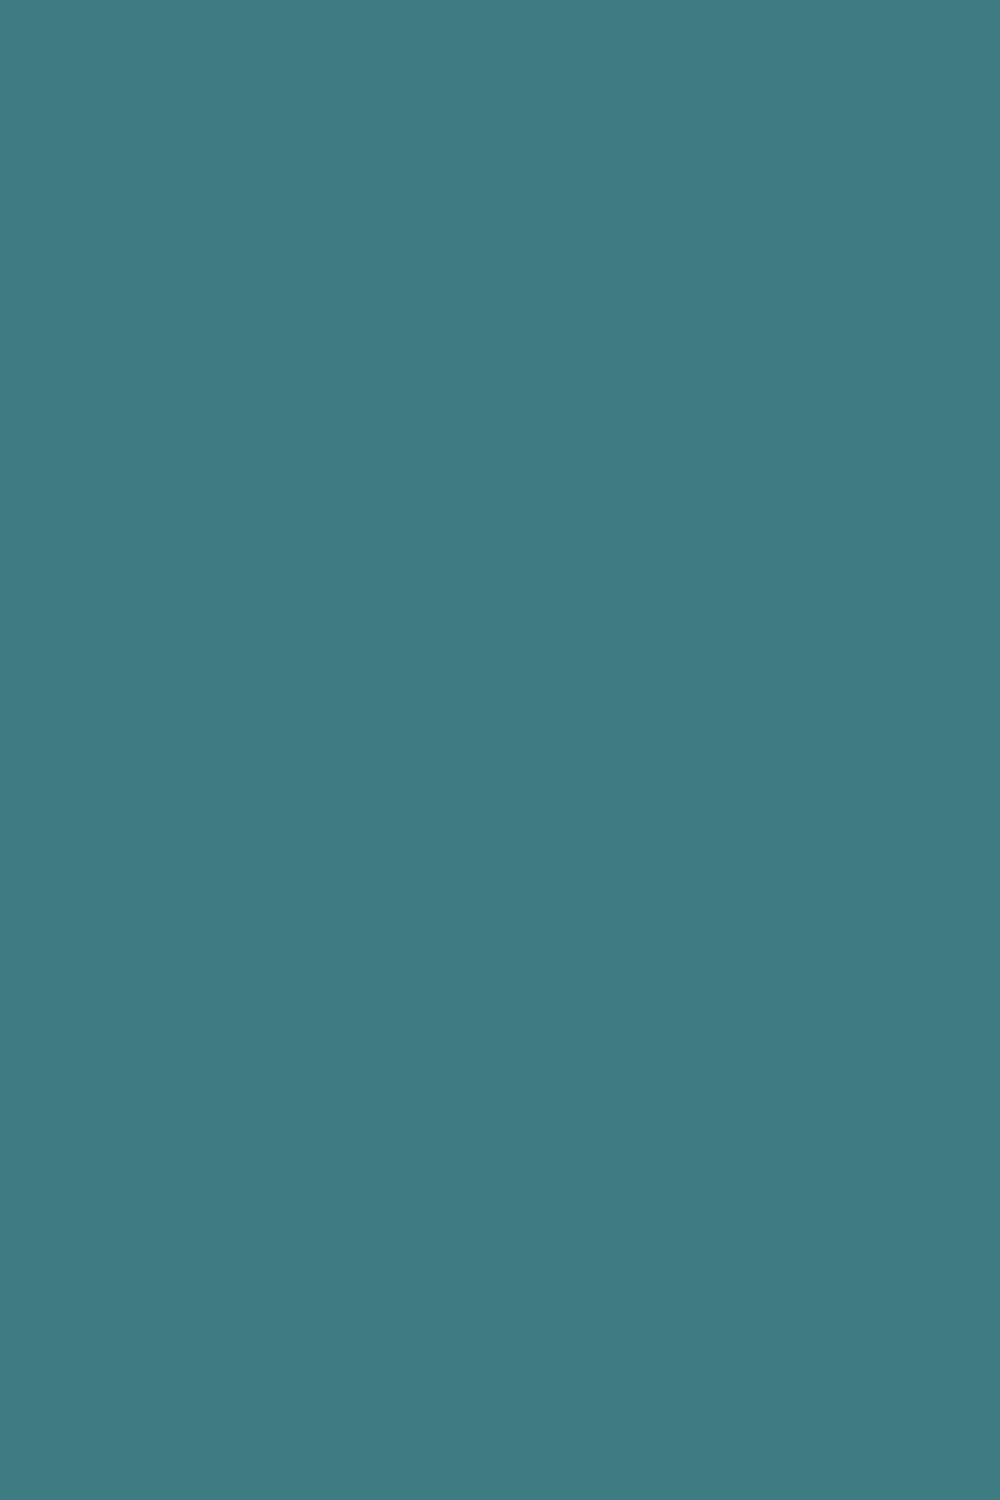 Teal Paint Colors Open Air Paint Color Sw 6491 By Sherwin Williams View Interior